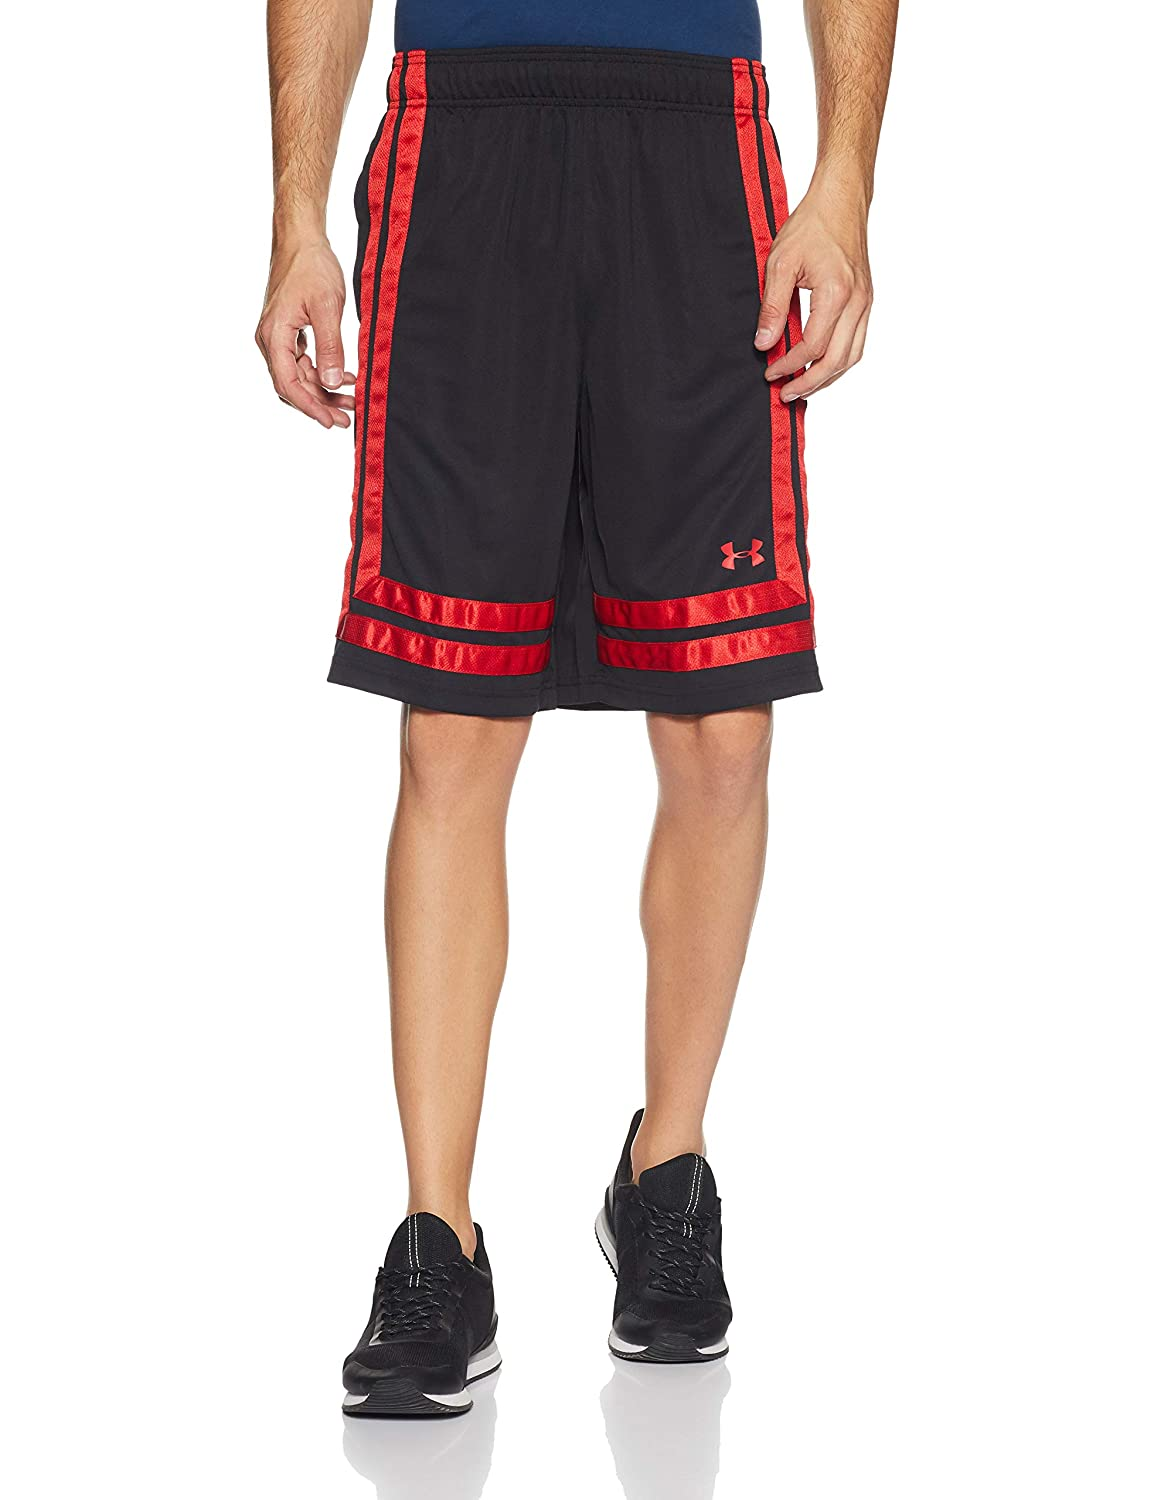 Under Armour Men's Baseline 10 Shorts Under Armour Apparel 1305729